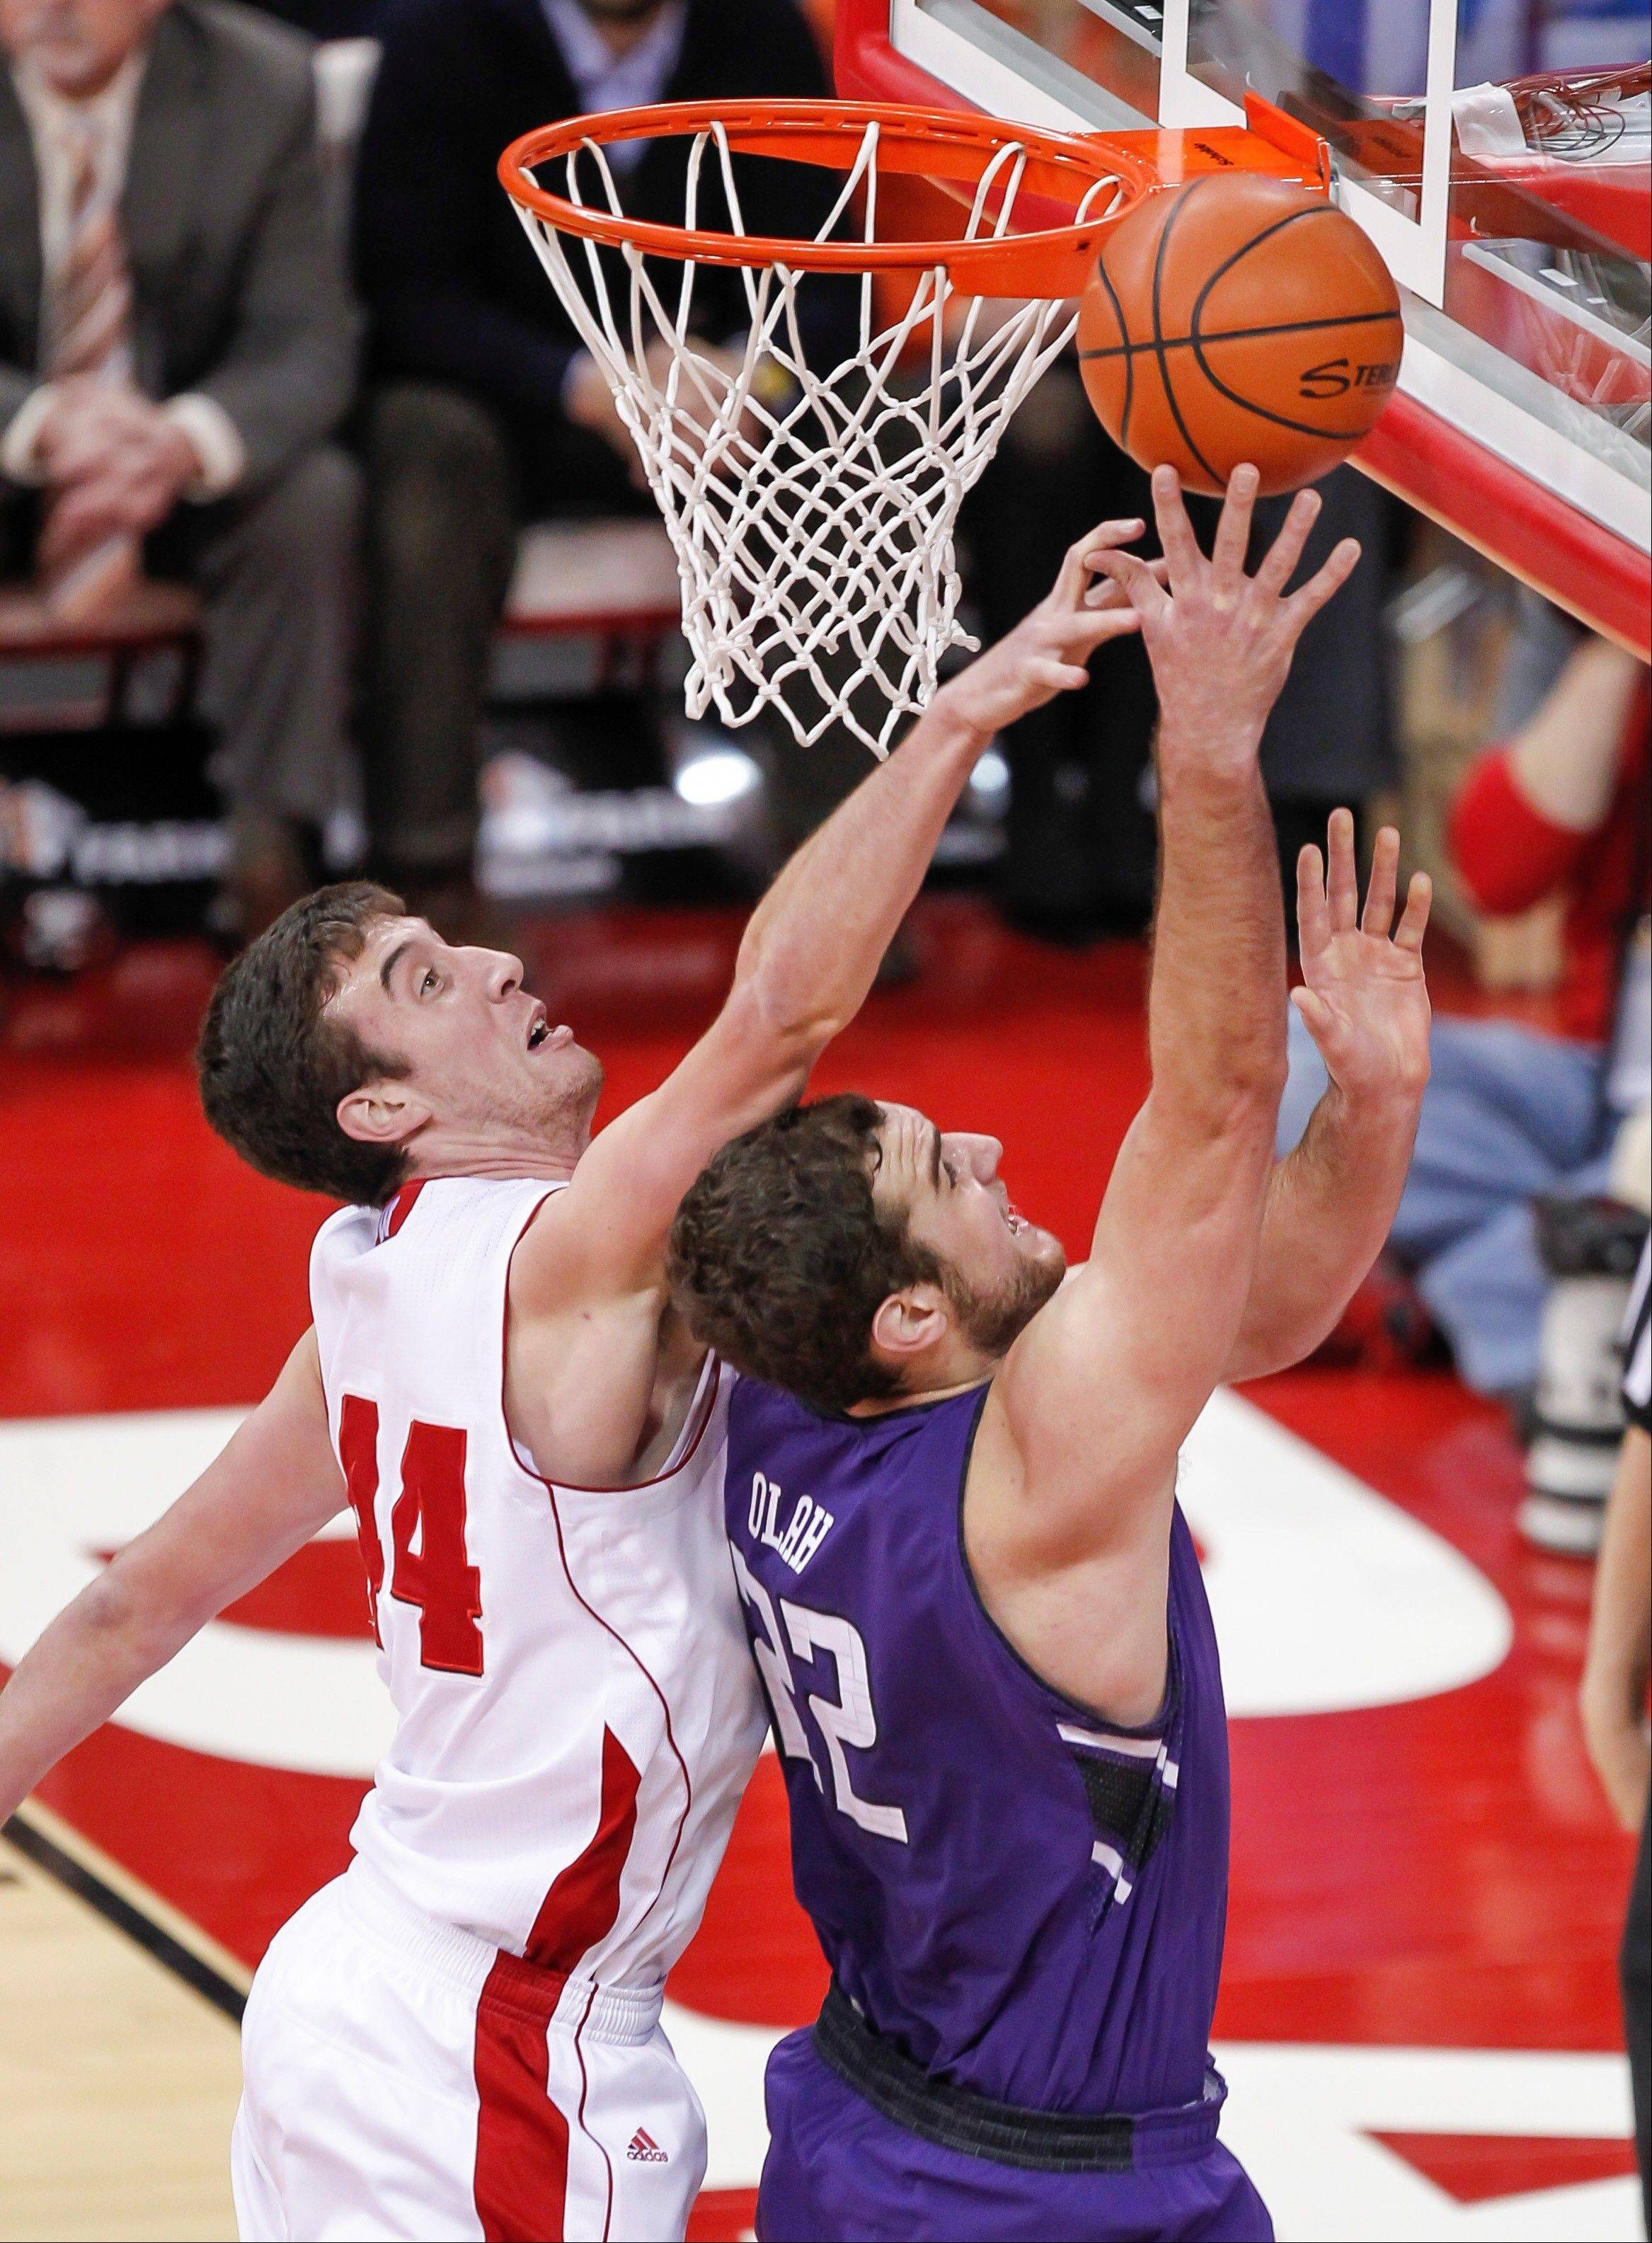 Wisconsin's Frank Kaminsky, left, knocks the ball away from Northwestern's Alex Olah during the first half of Wednesday's game in Madison, Wis.